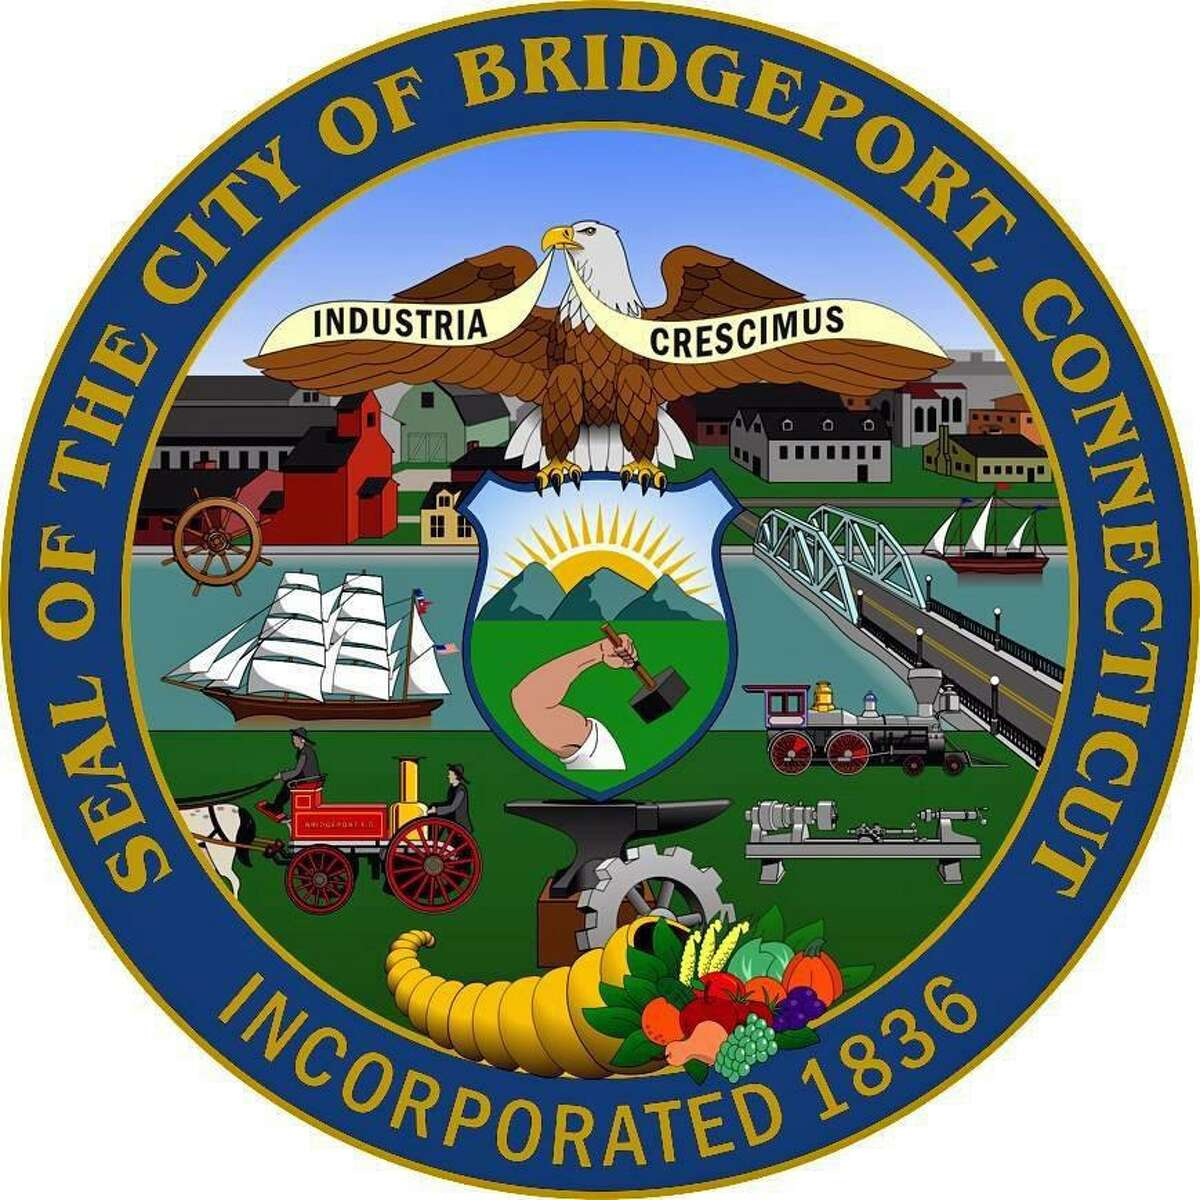 File photo of the Bridgeport, Conn., seal.